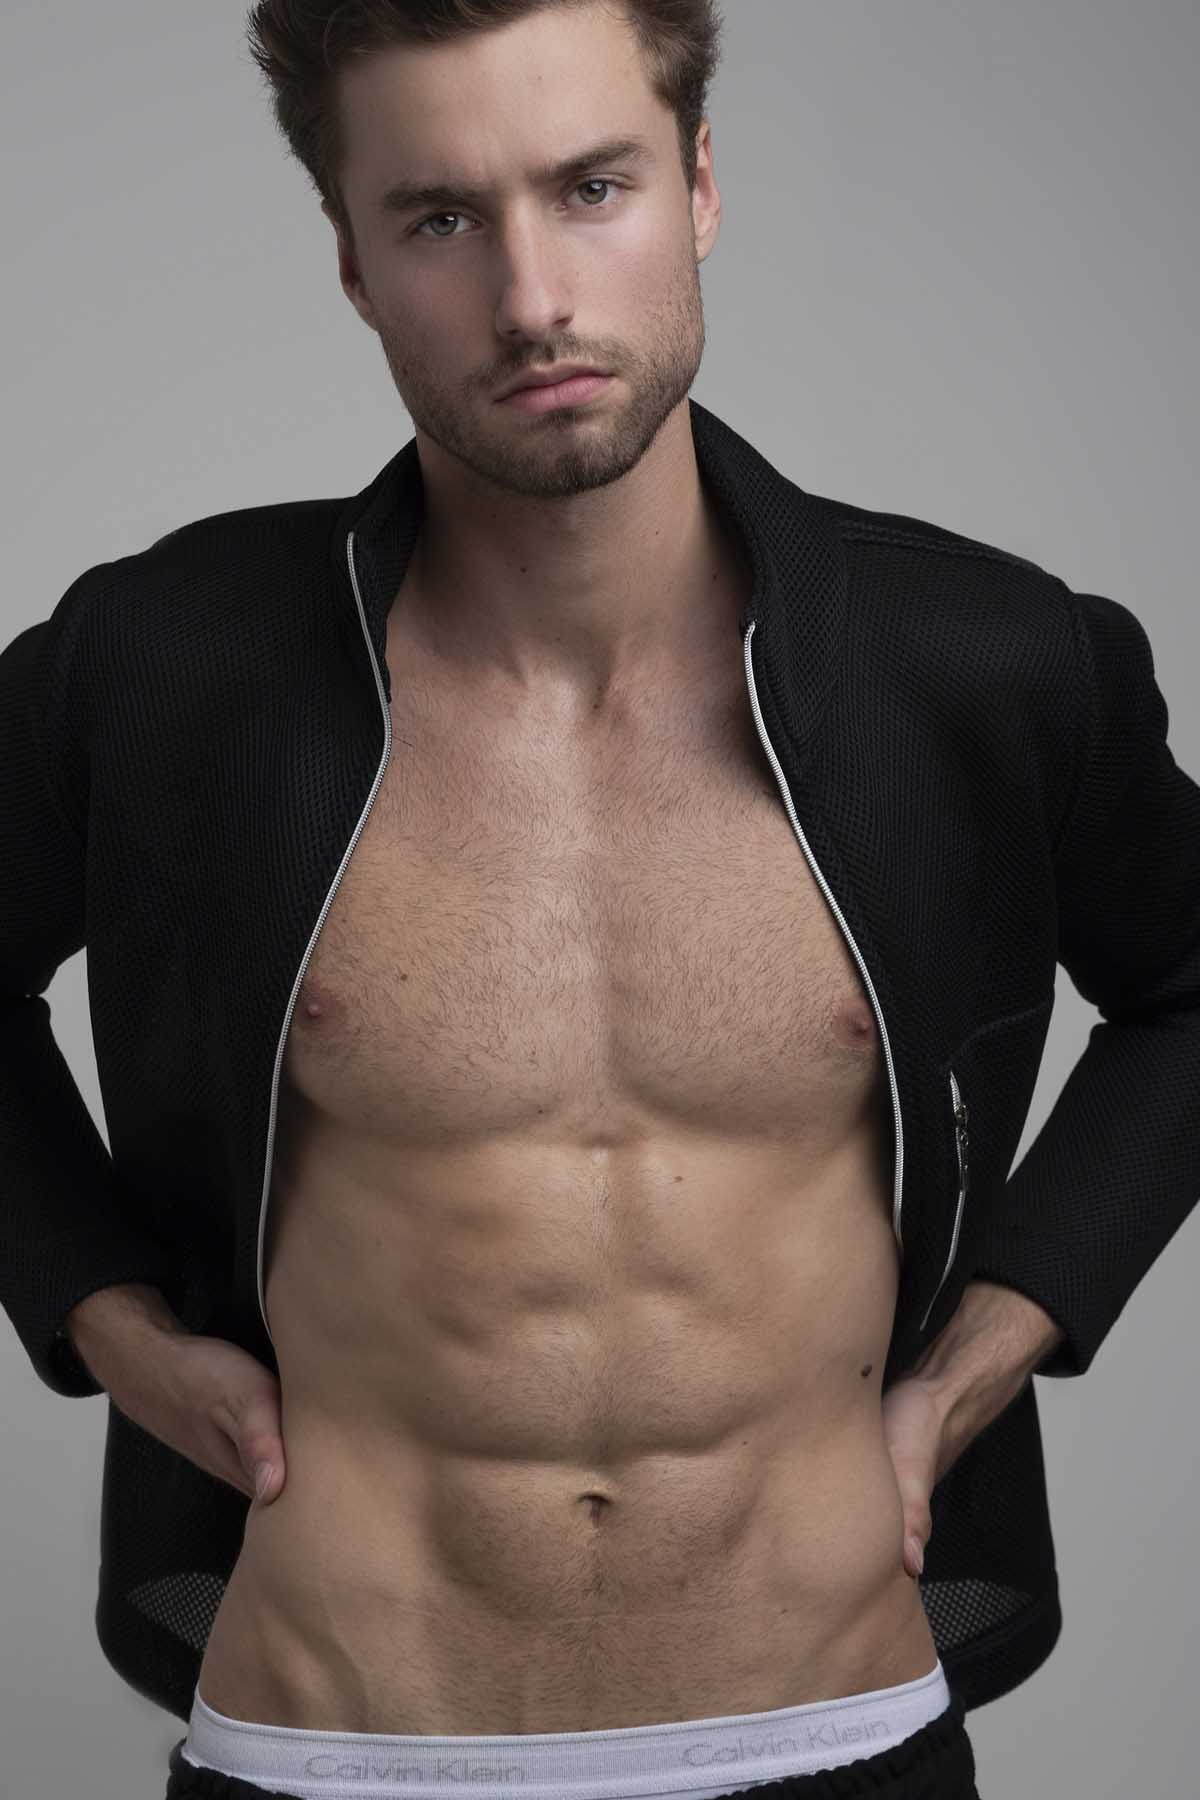 Anthonny Willen by Luciano Moraes for Brazilian Male Model